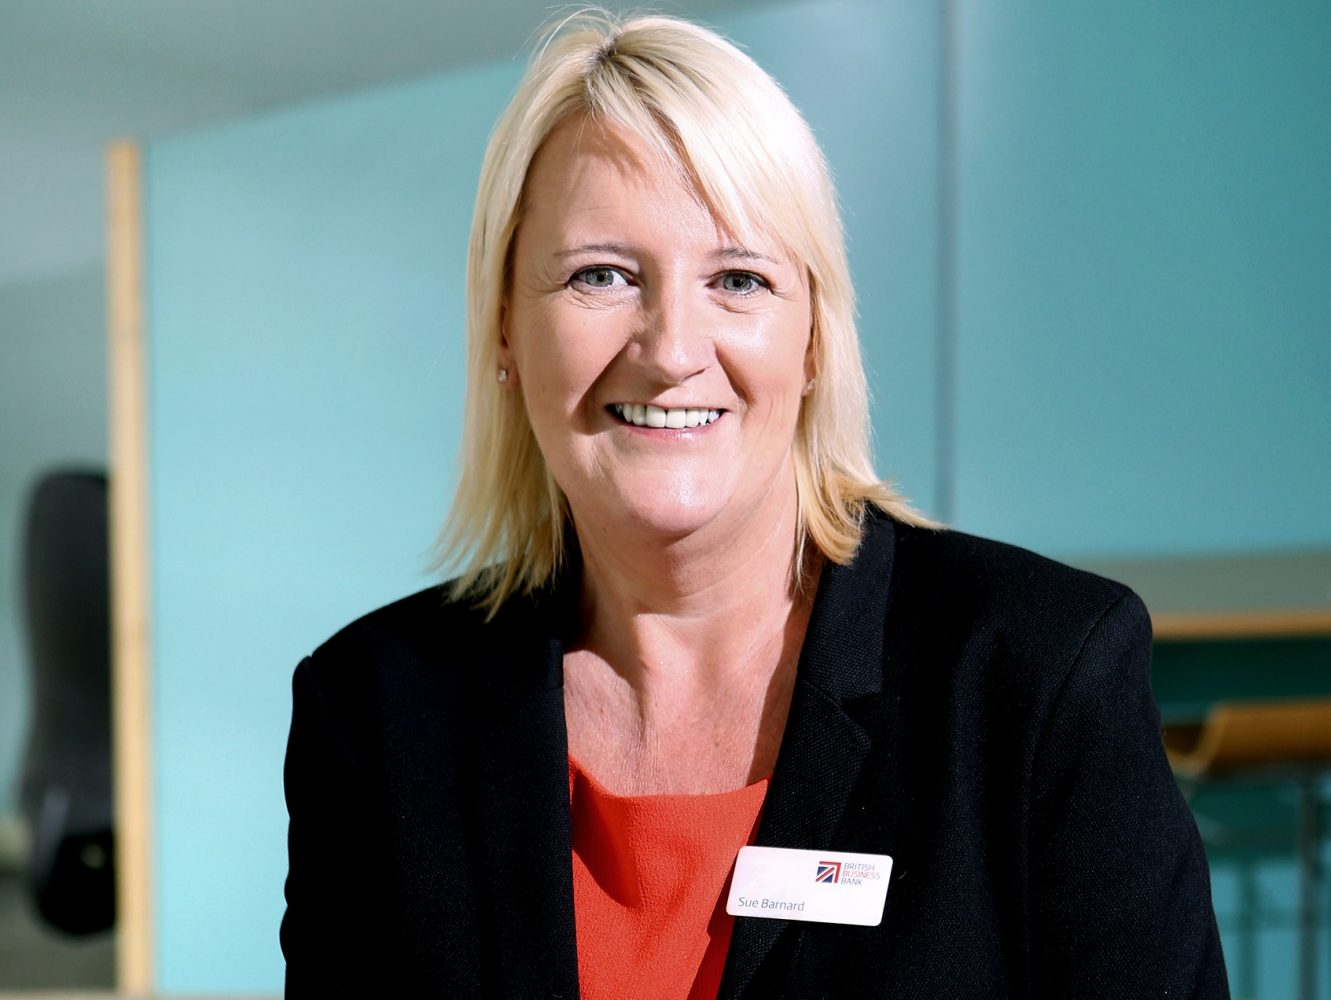 Headshot of Sue Barnard, the UKN Senior Manager at the British Business Bank